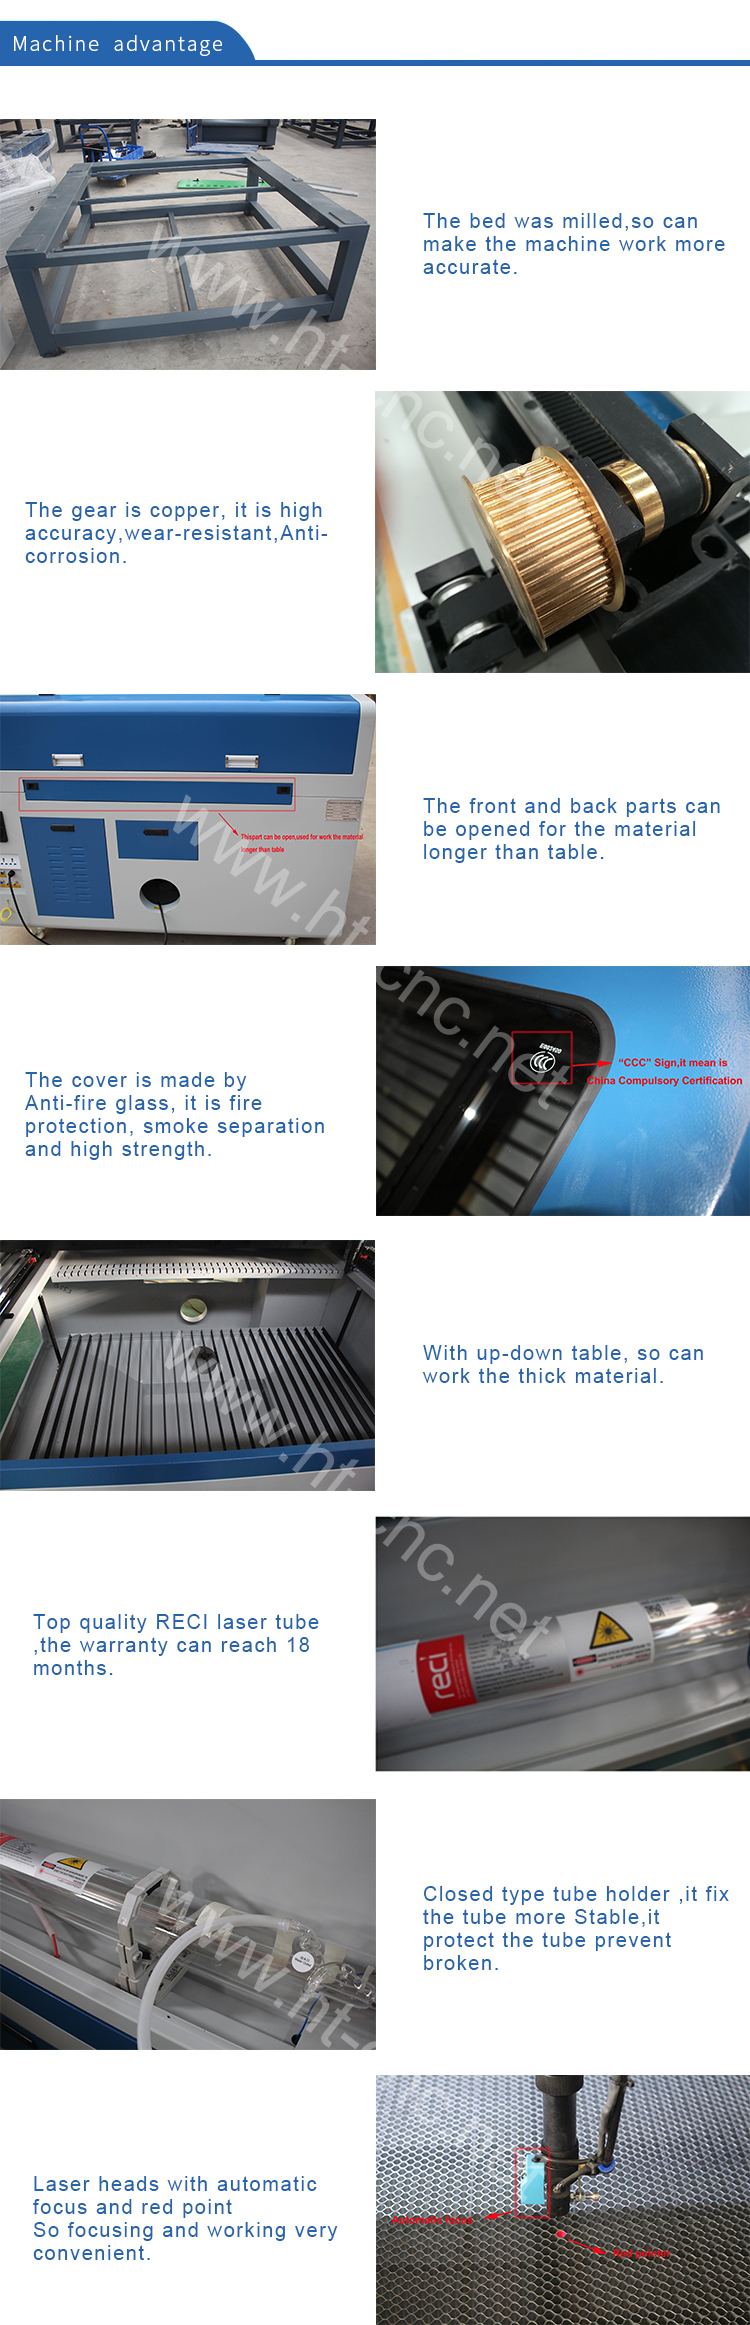 Lasercut software co2 1390 laser cutting and engraving machine for wood